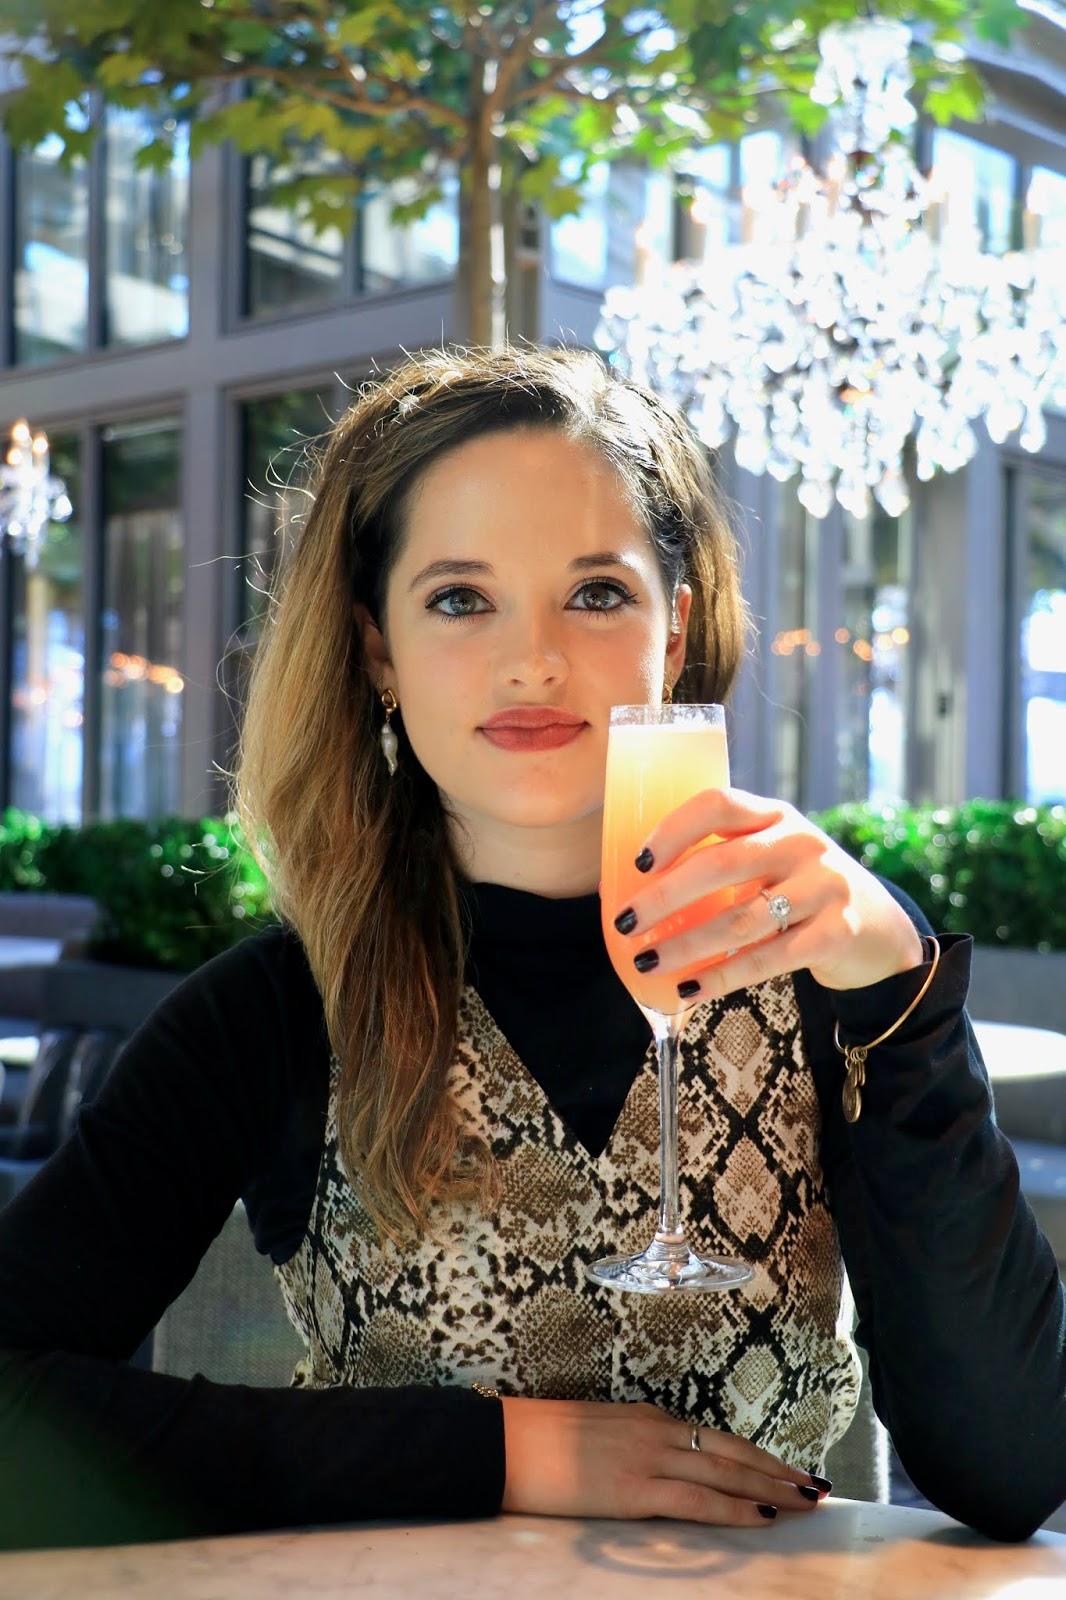 Nyc fashion blogger Kathleen Harper at the Restoration Hardware rooftop for brunch.